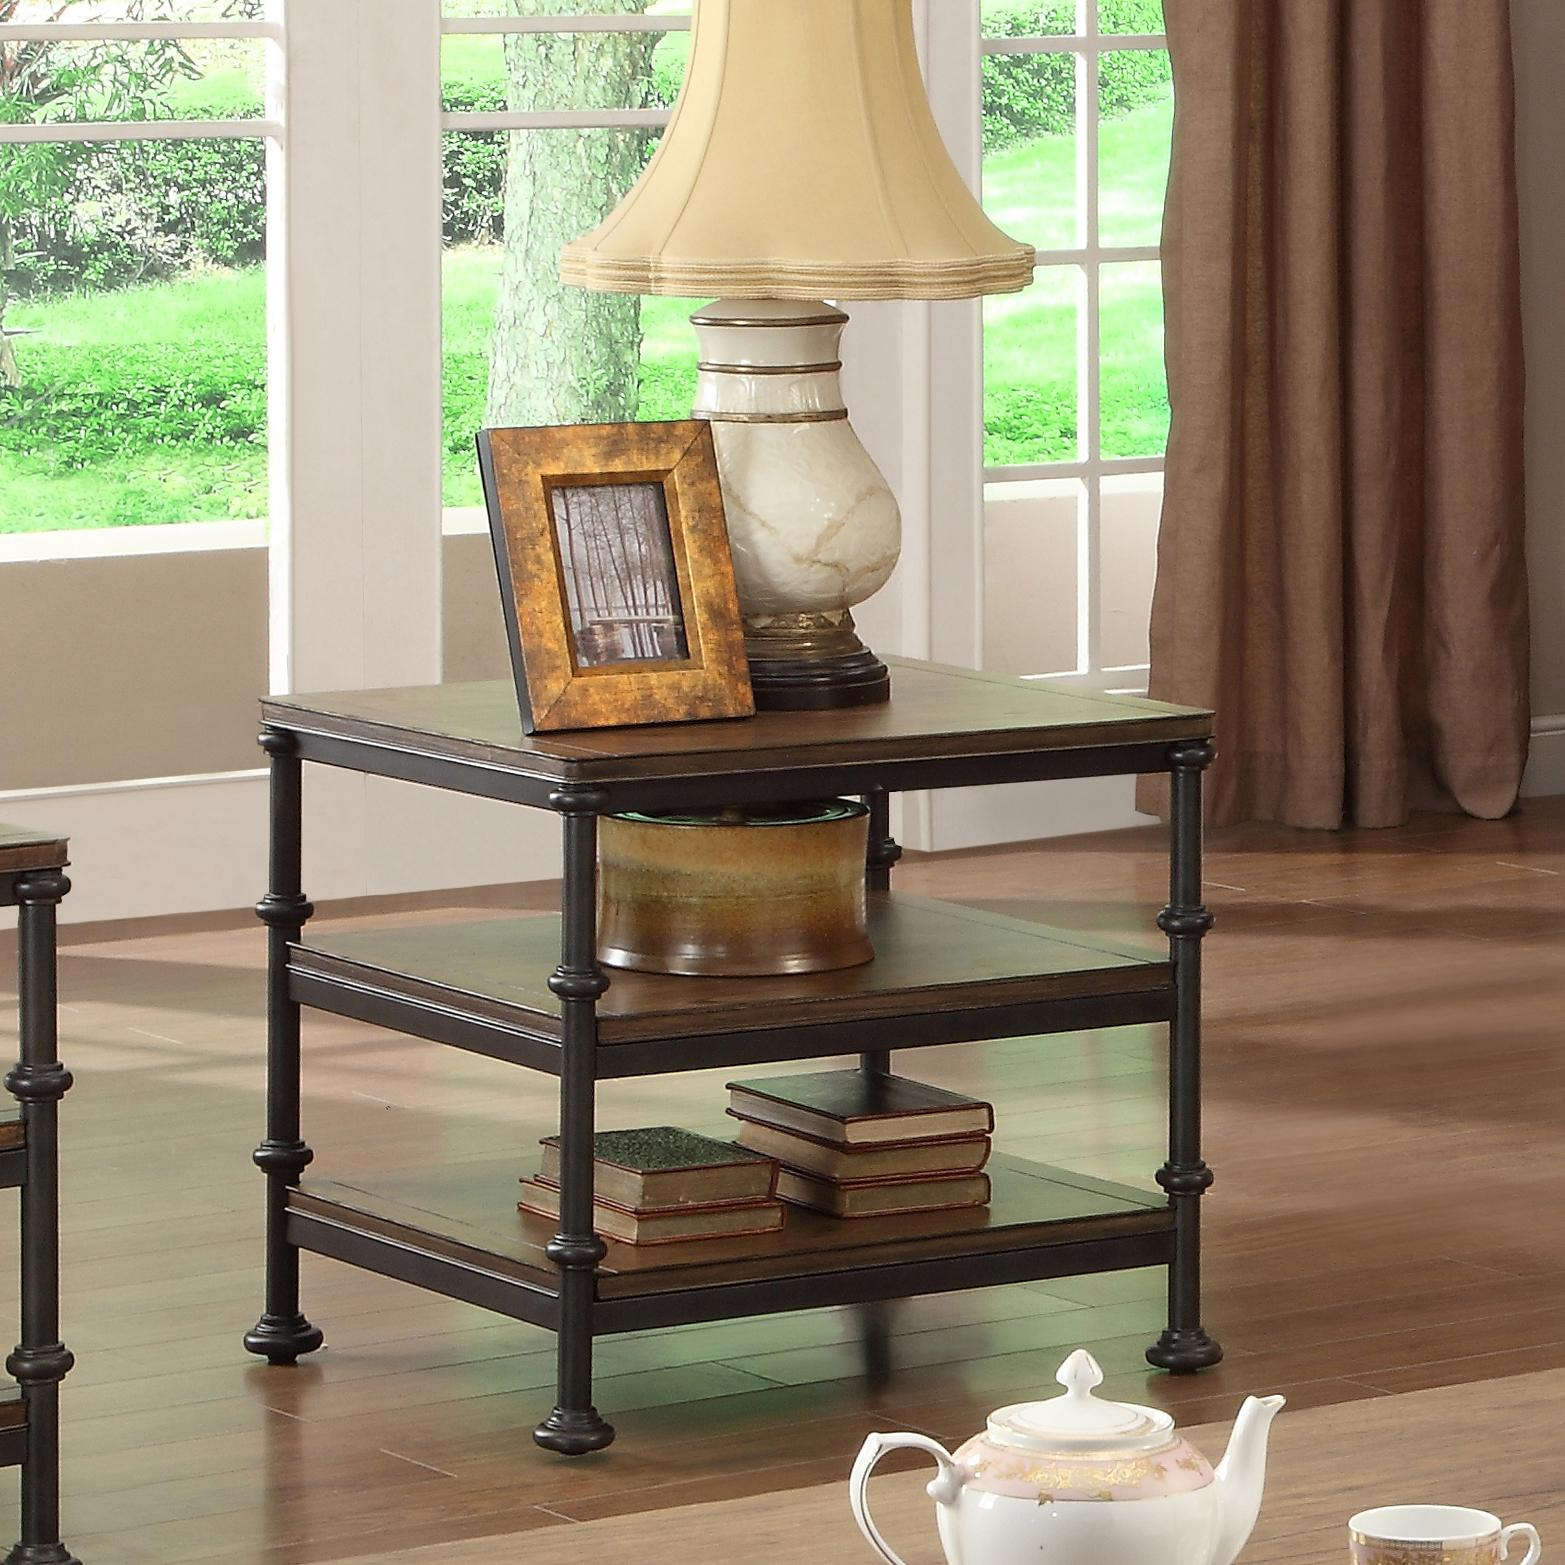 rectangular end table with shelves riverside furniture wolf products color camden town gold decorations glass coffee wrought iron legs inch round tablecloth fits what size old